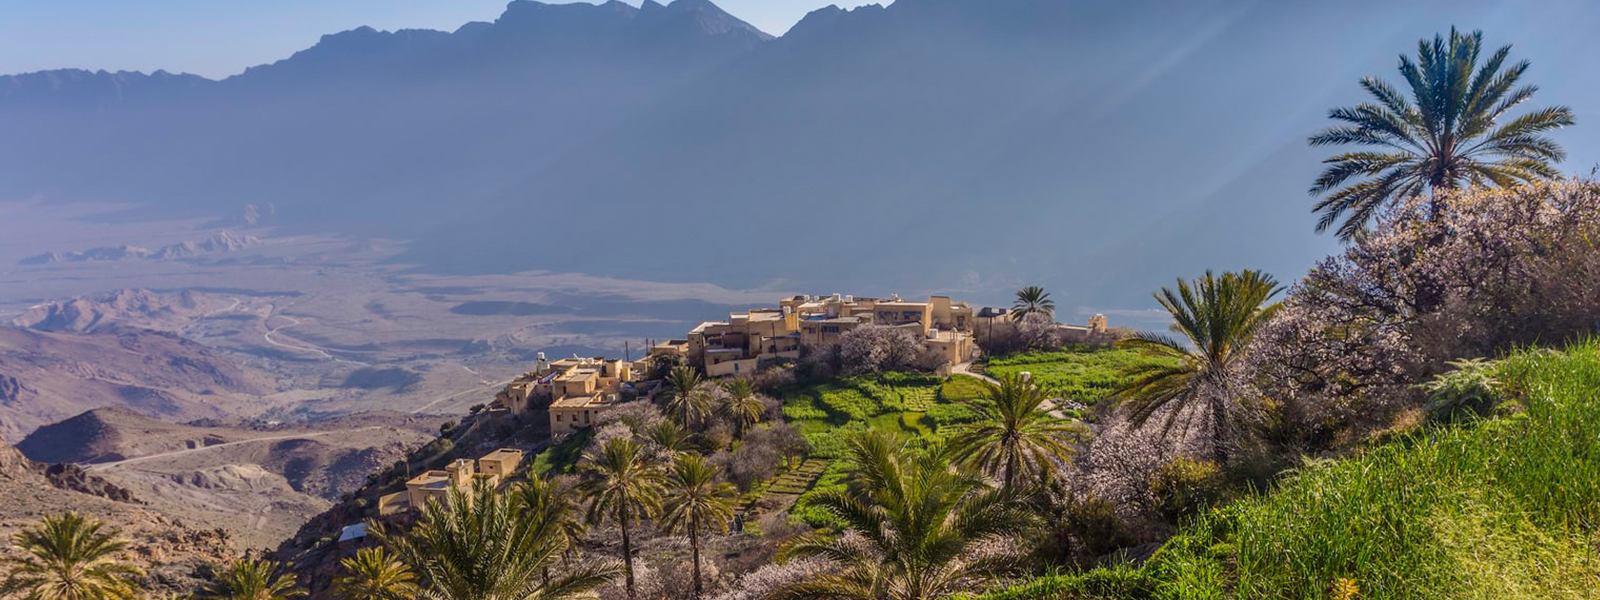 Village of Wakan Al Batinah 3